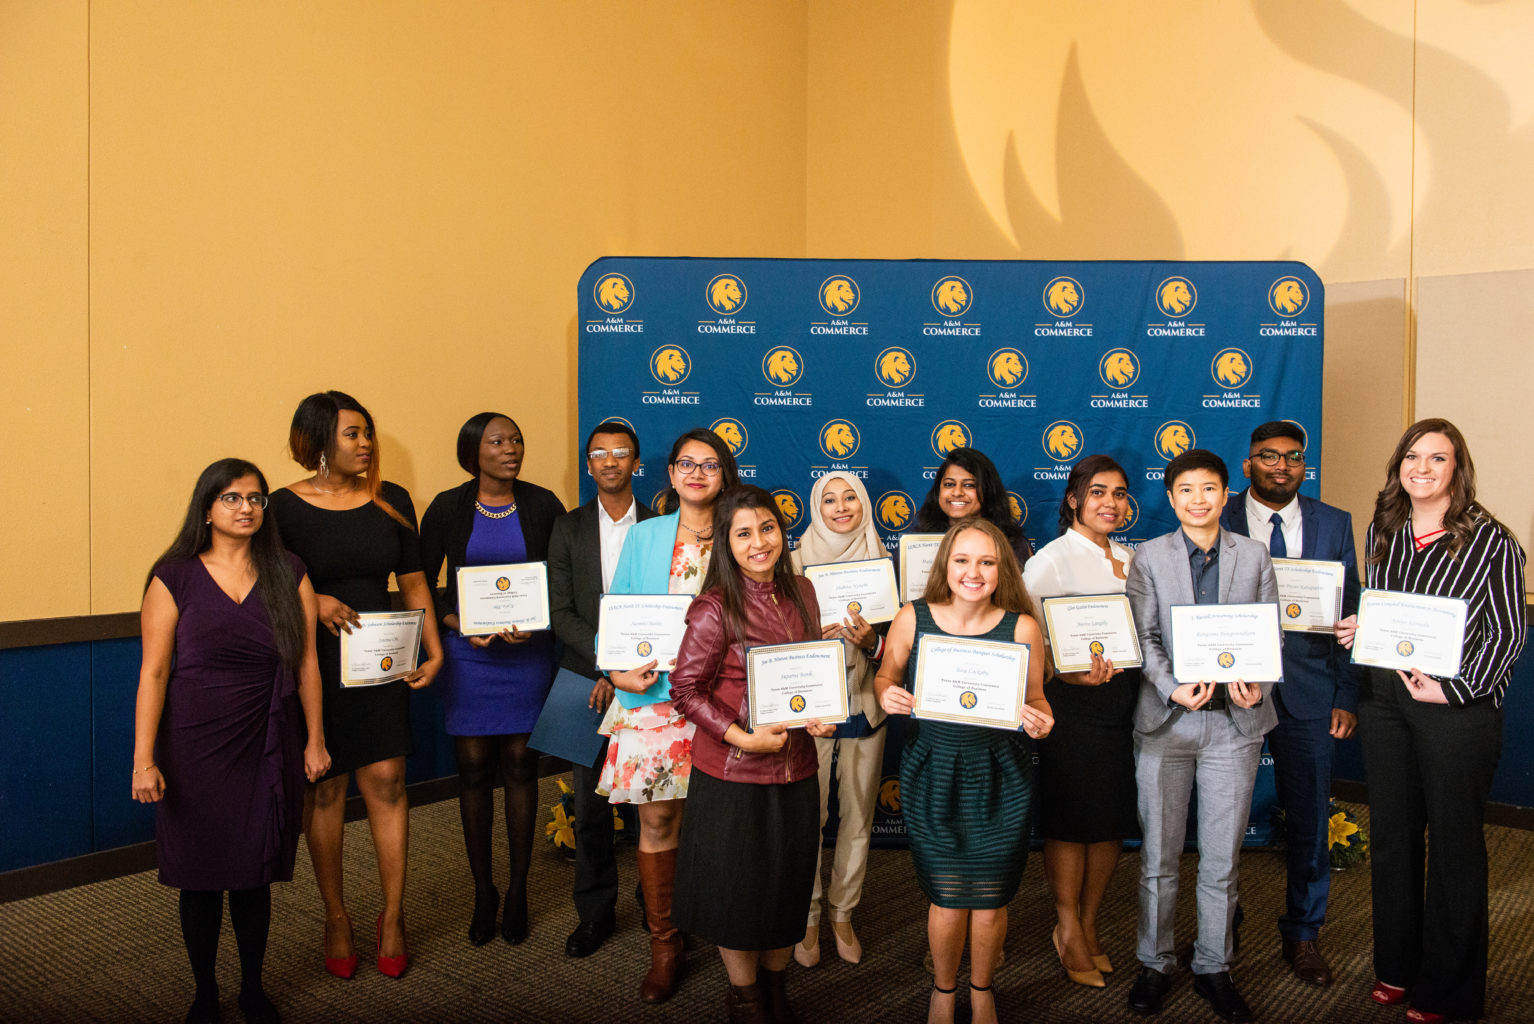 Group photo of students from TAMUC College of Business holding their certificates.